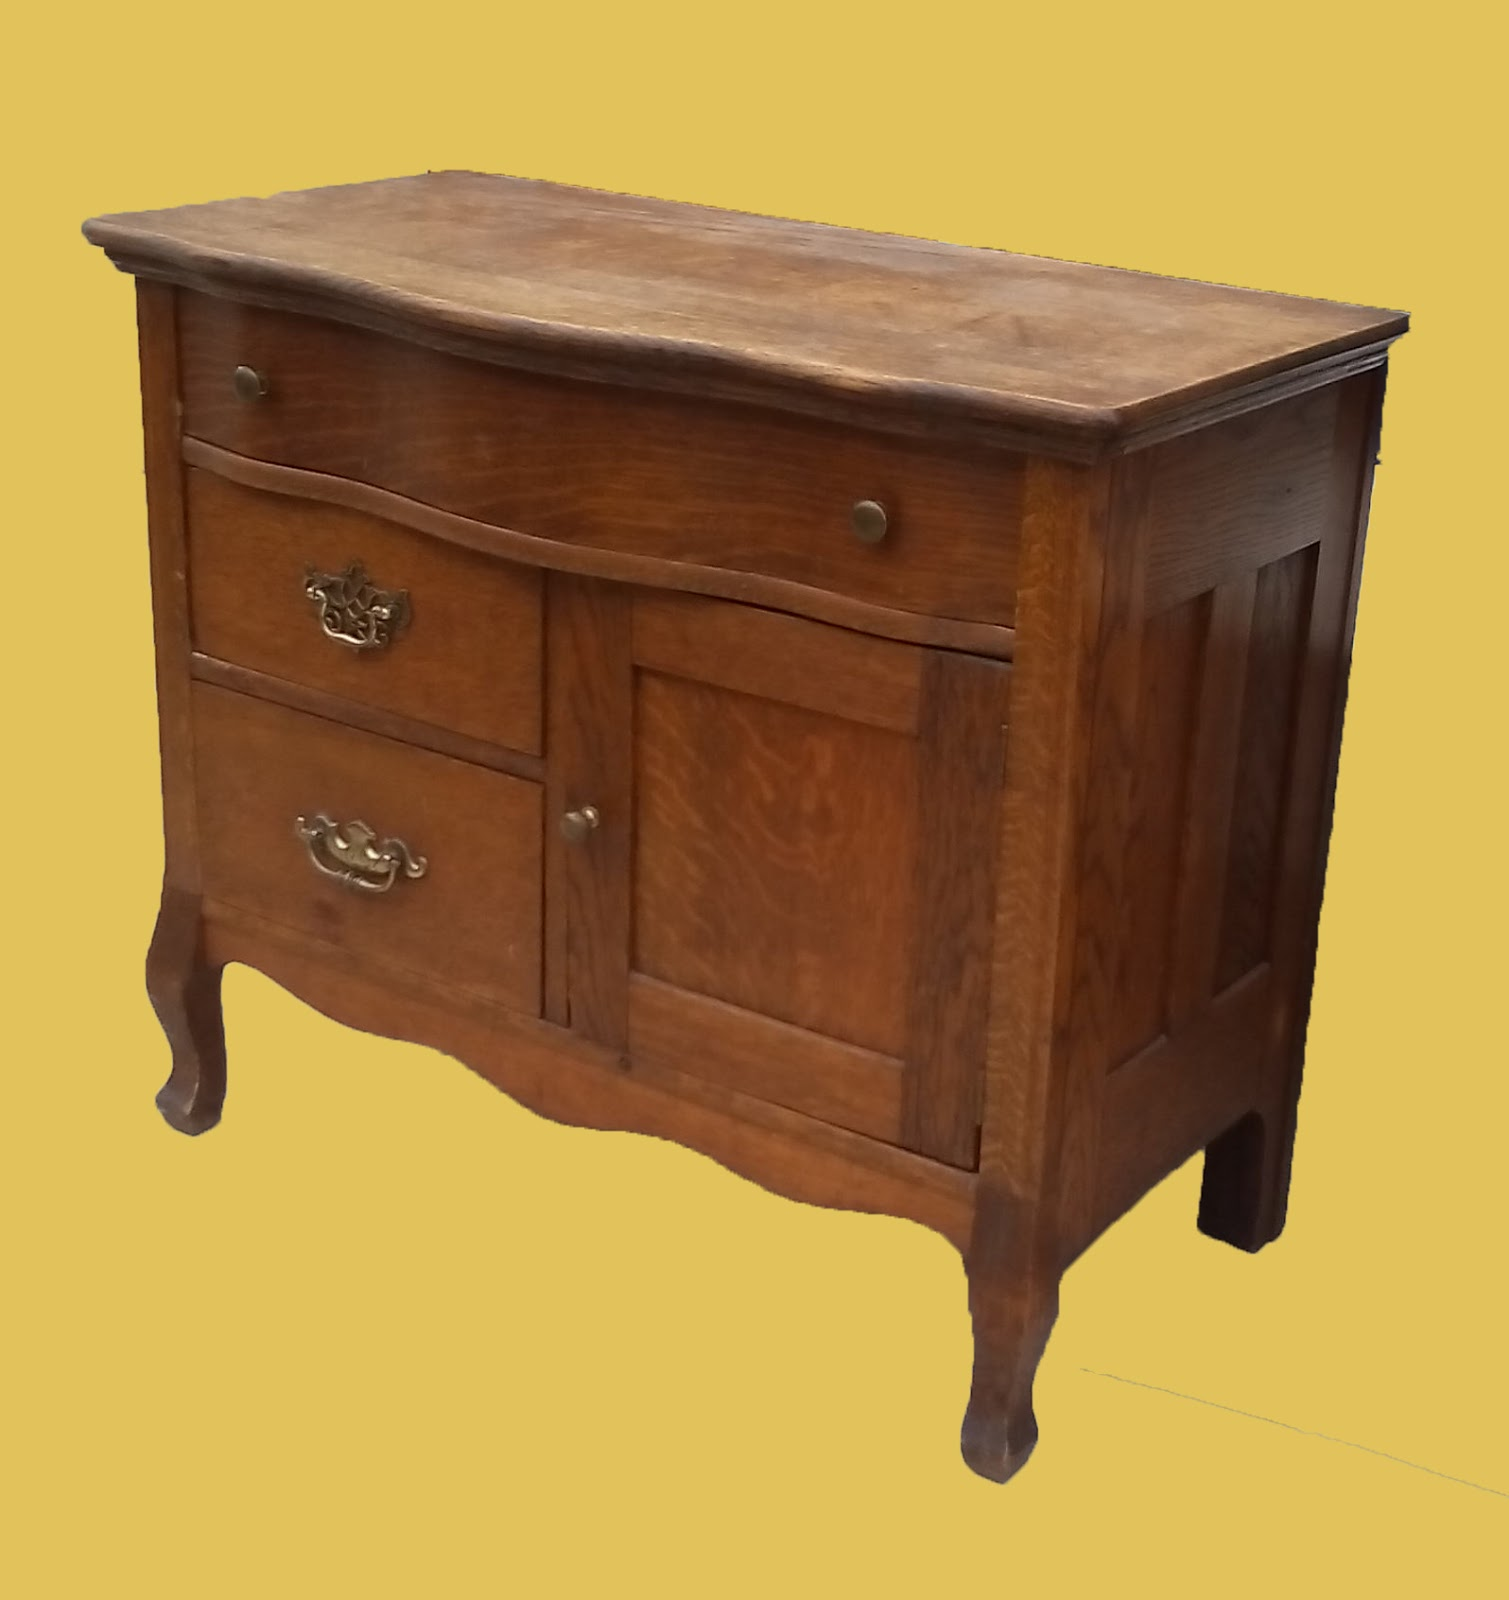 Uhuru Furniture Amp Collectibles Antique Early 1900s Wash